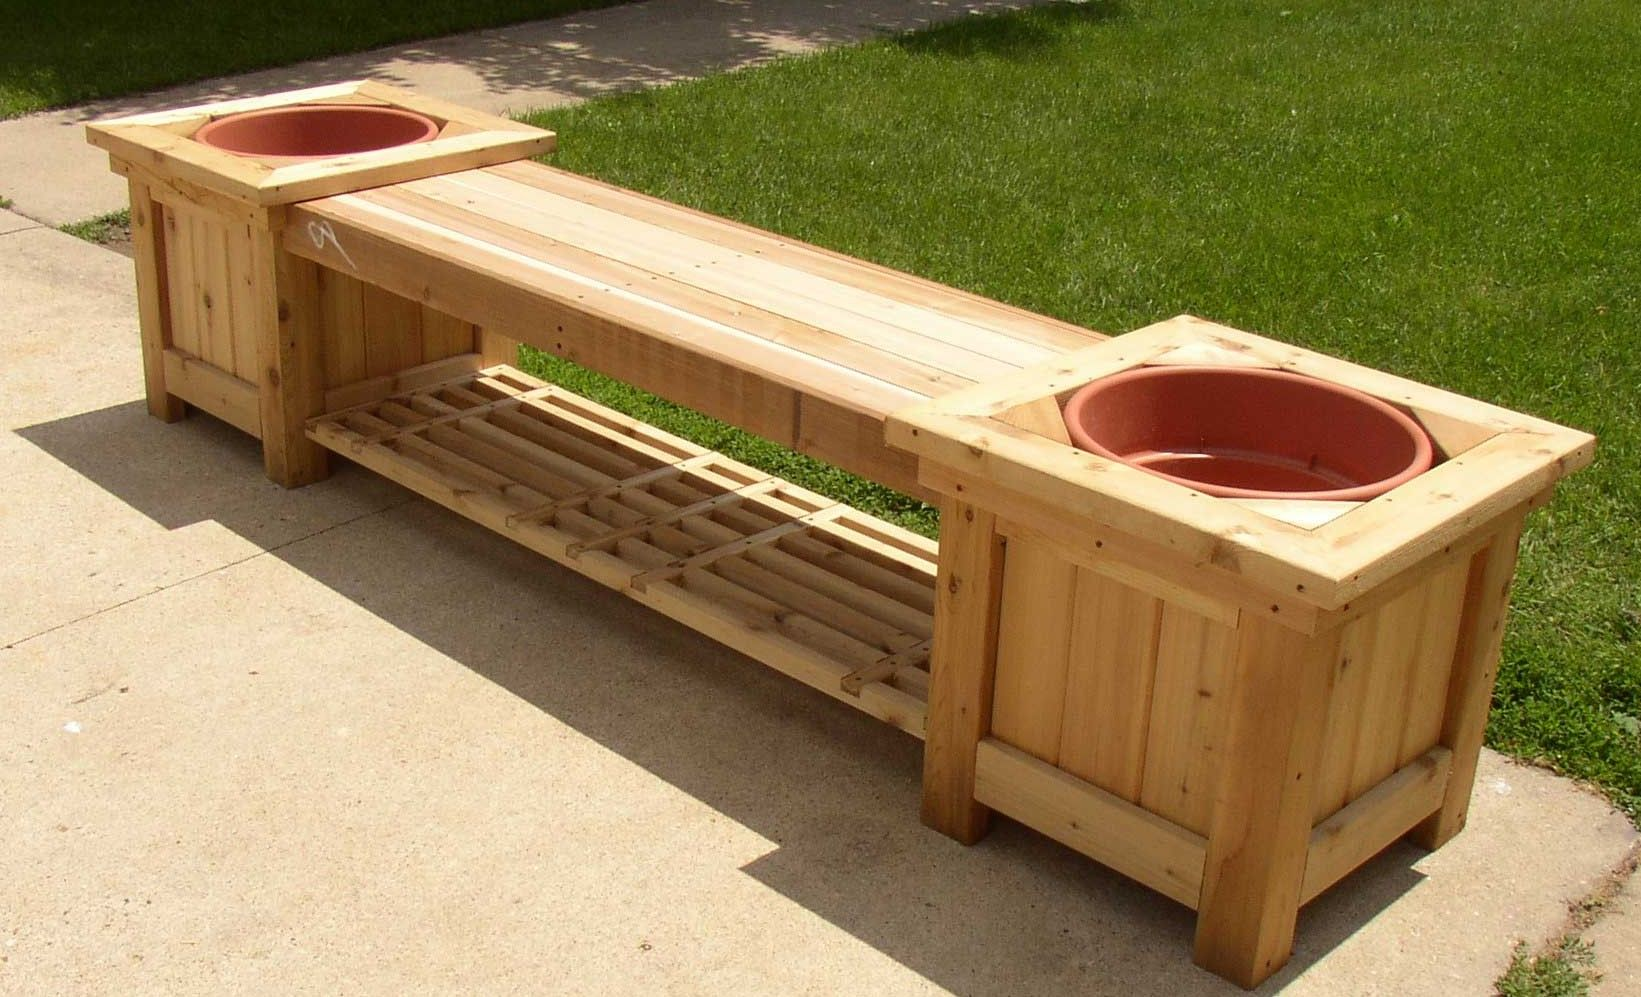 Plant Bench Indoor Diy Wood Planter Bench Plans Wooden Pdf Build Woodworking